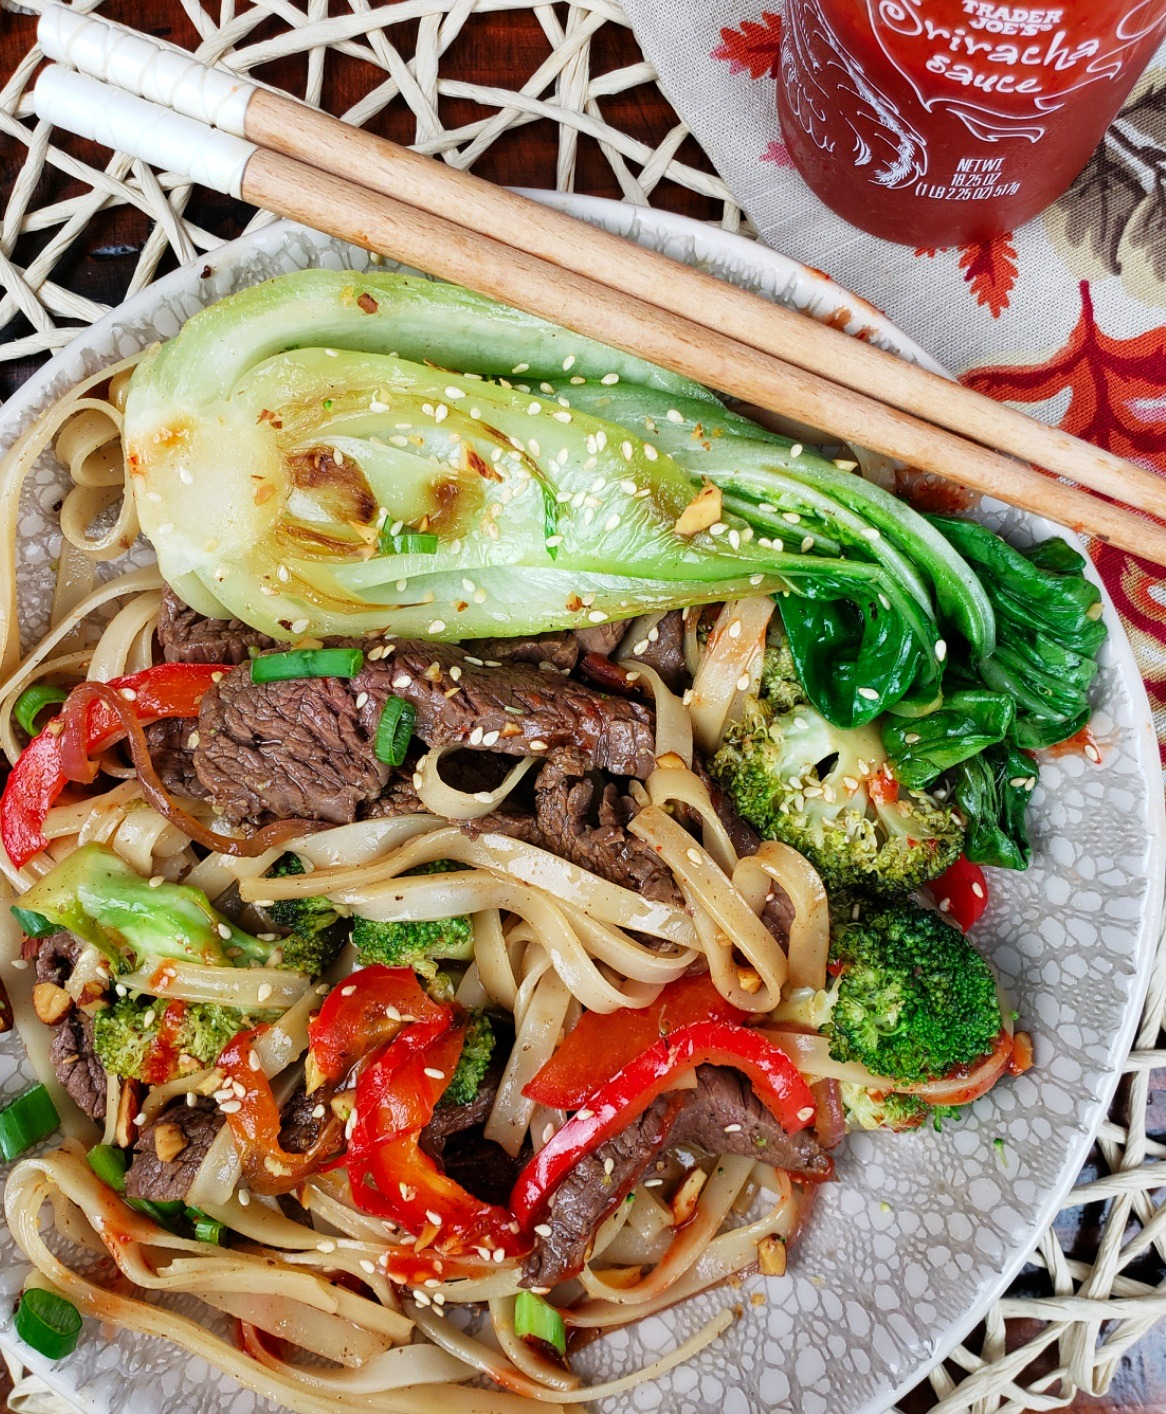 Flank Steak, Boy Choy and Broccoli with Gluten Free Rice Noodles